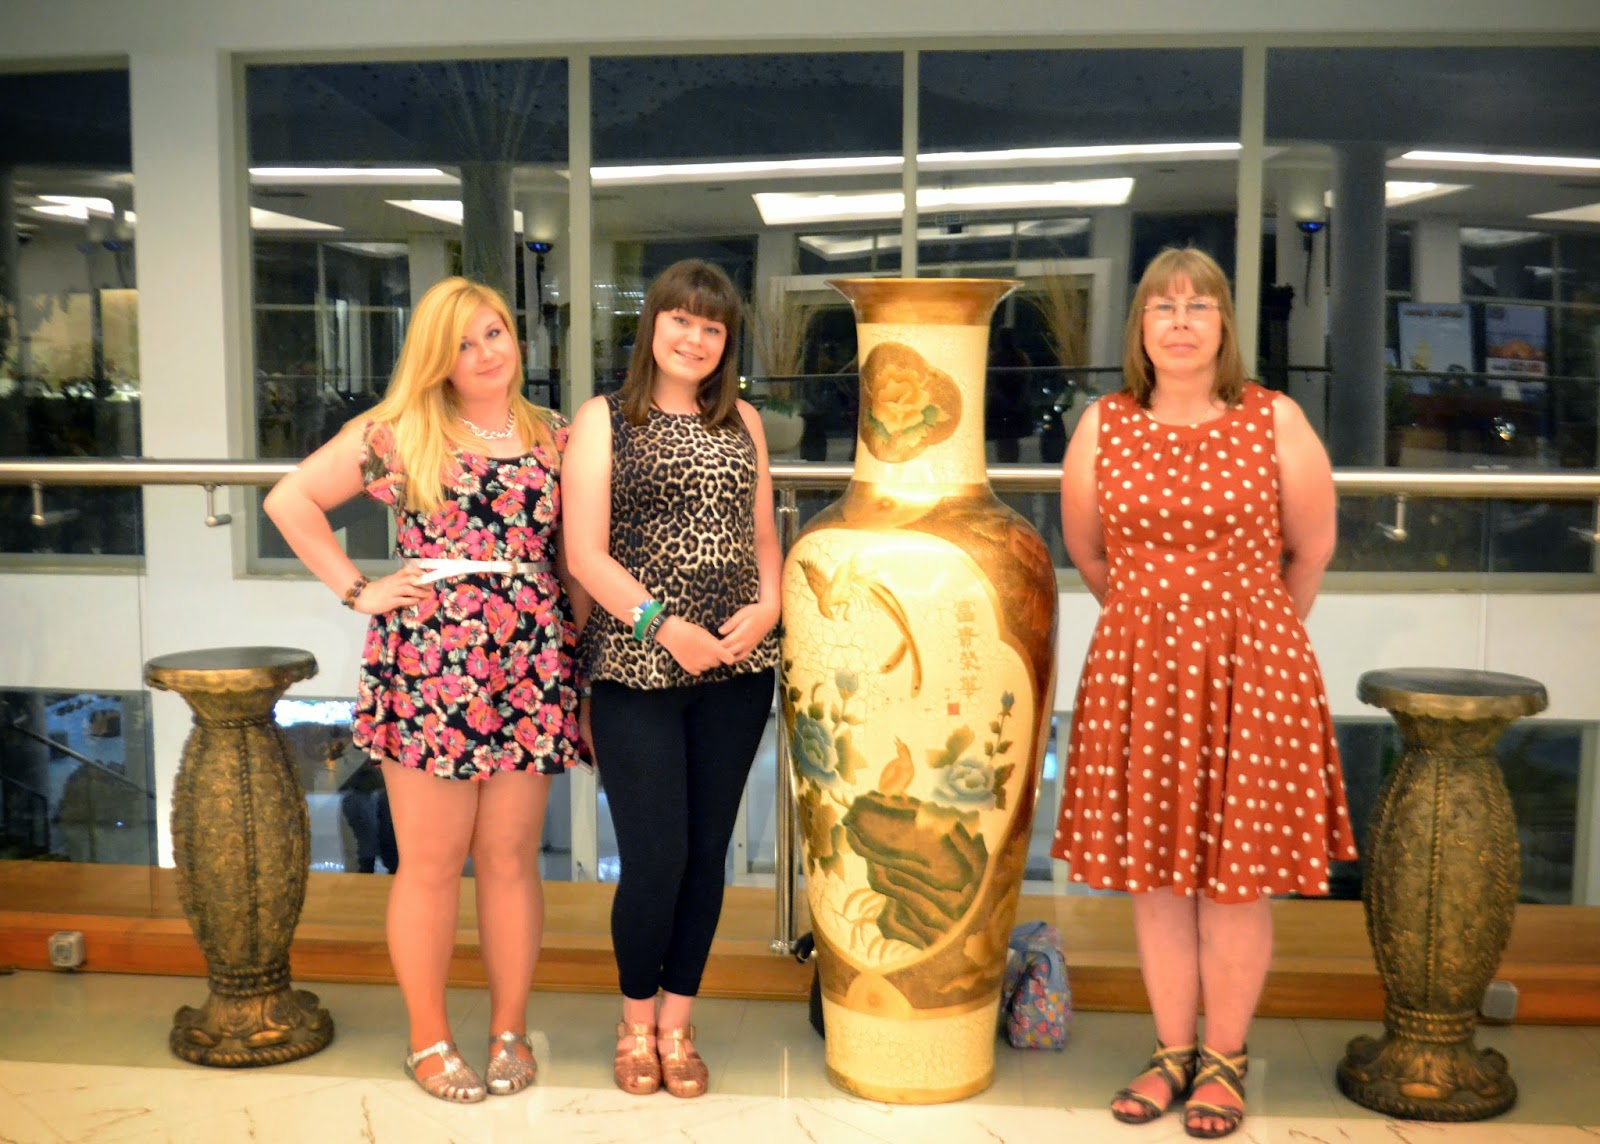 myself, my sister, and my mom standing in the hotel reception with a large ornate vase in between us